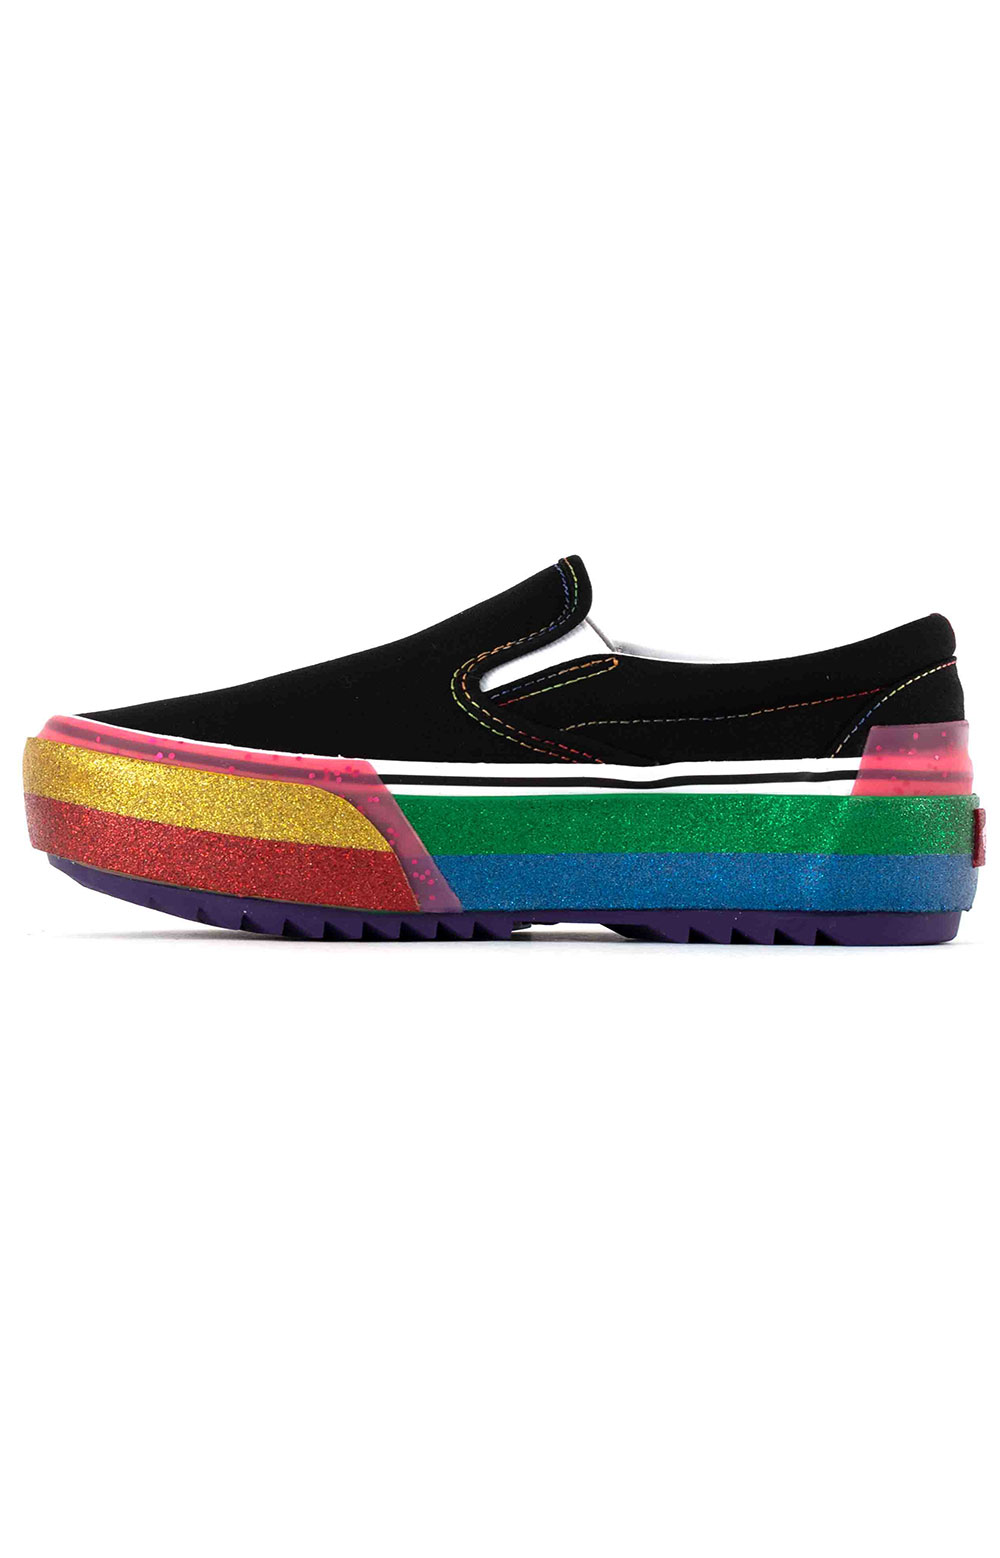 (TZVWW1) Glitter Classic Slip-On Stacked Shoes - Black/Rainbow 4